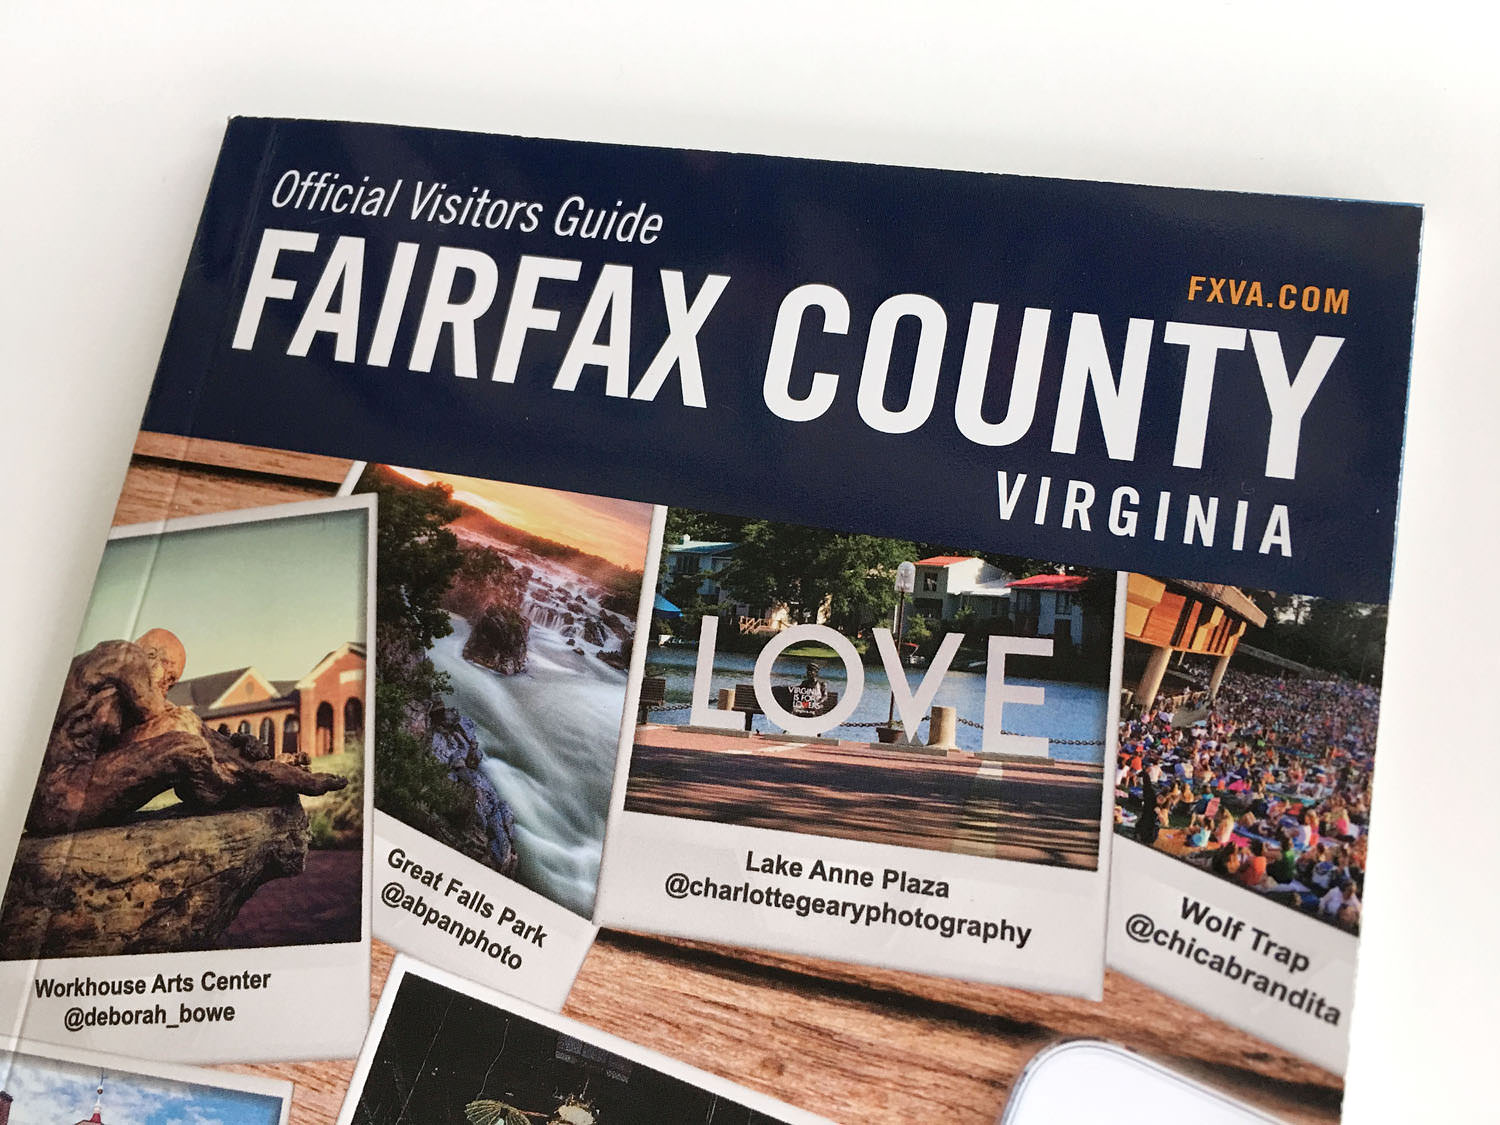 The Fairfax County Official Visitors Guide